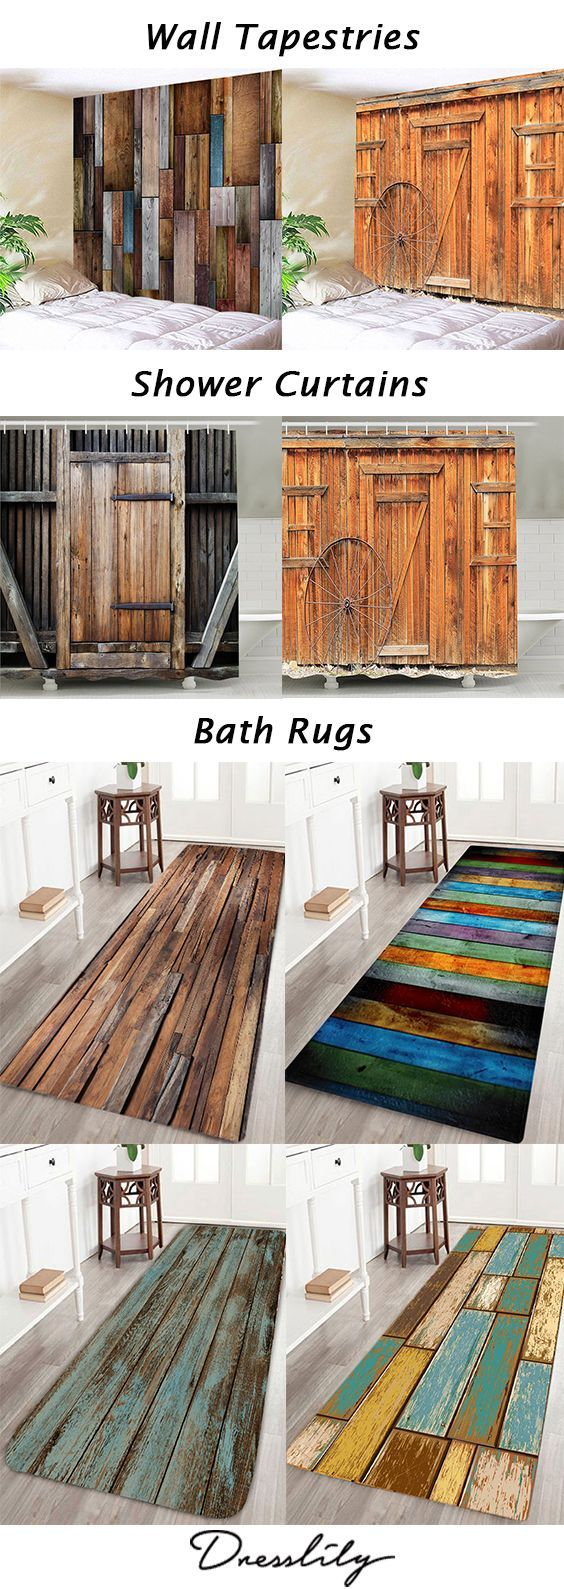 Best 25+ Rustic bath mats ideas on Pinterest | Kid friendly bath ...